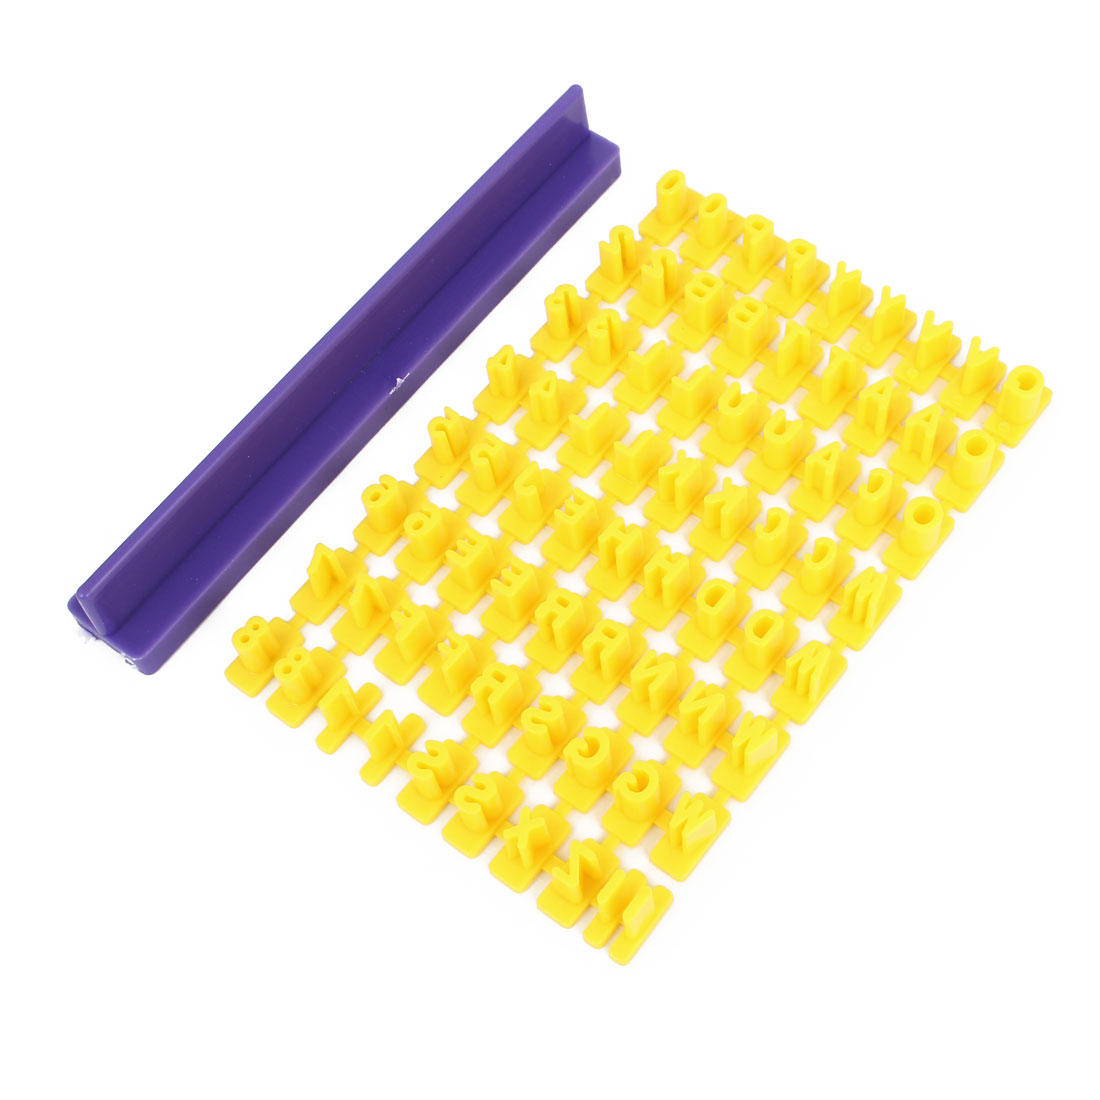 Number Letter Cookie Biscuit Stamp Cutter Embosser Cake Mold Purple Yellow